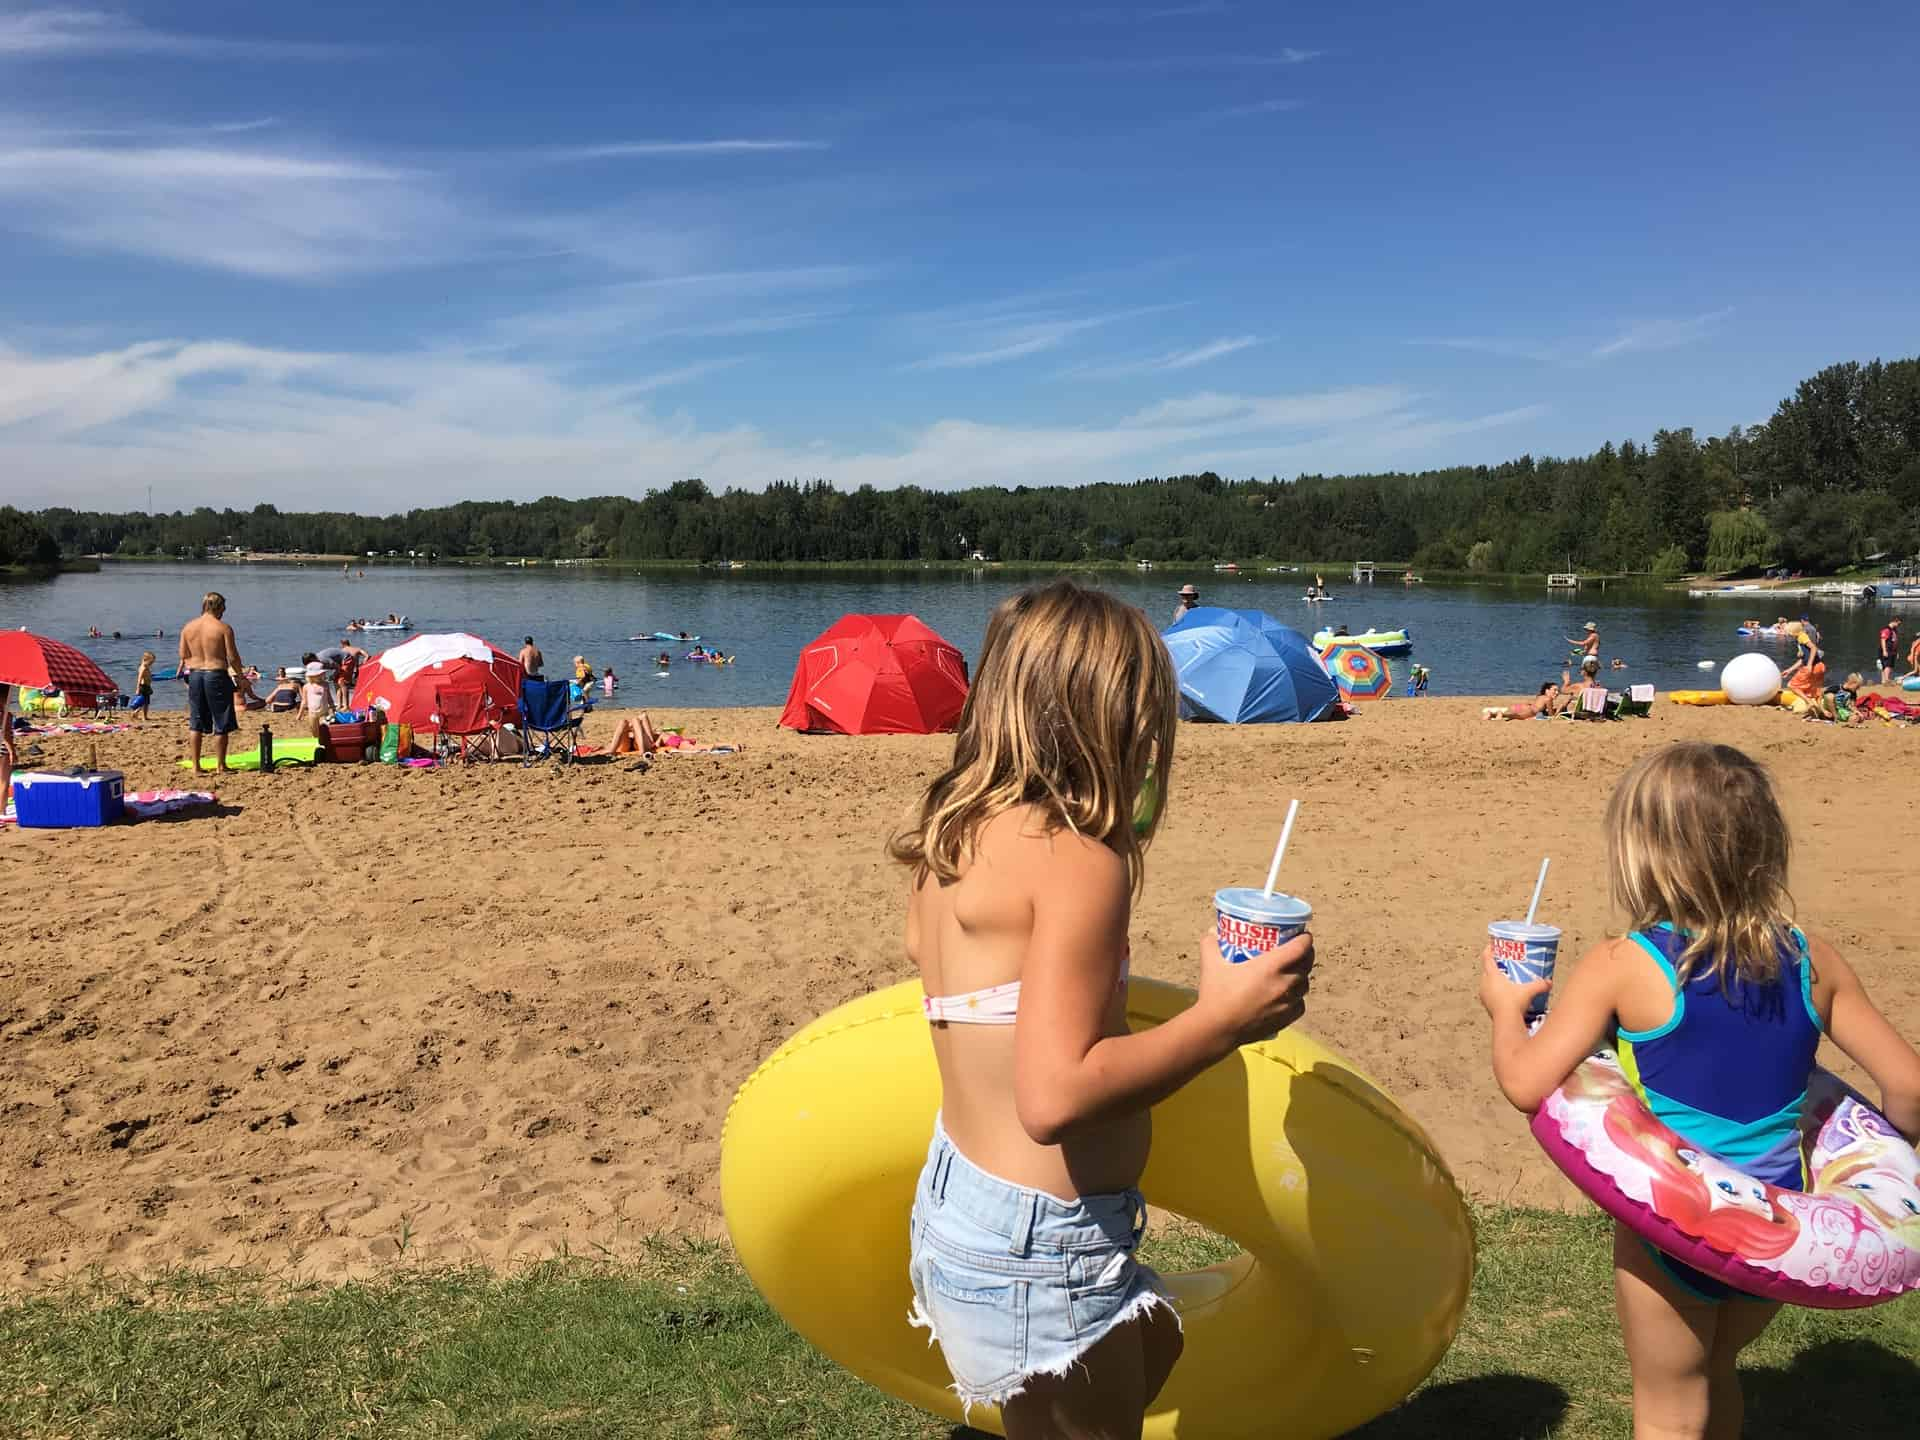 10 Waterparks and Beaches Near Edmonton that You've Got to Visit This Summer